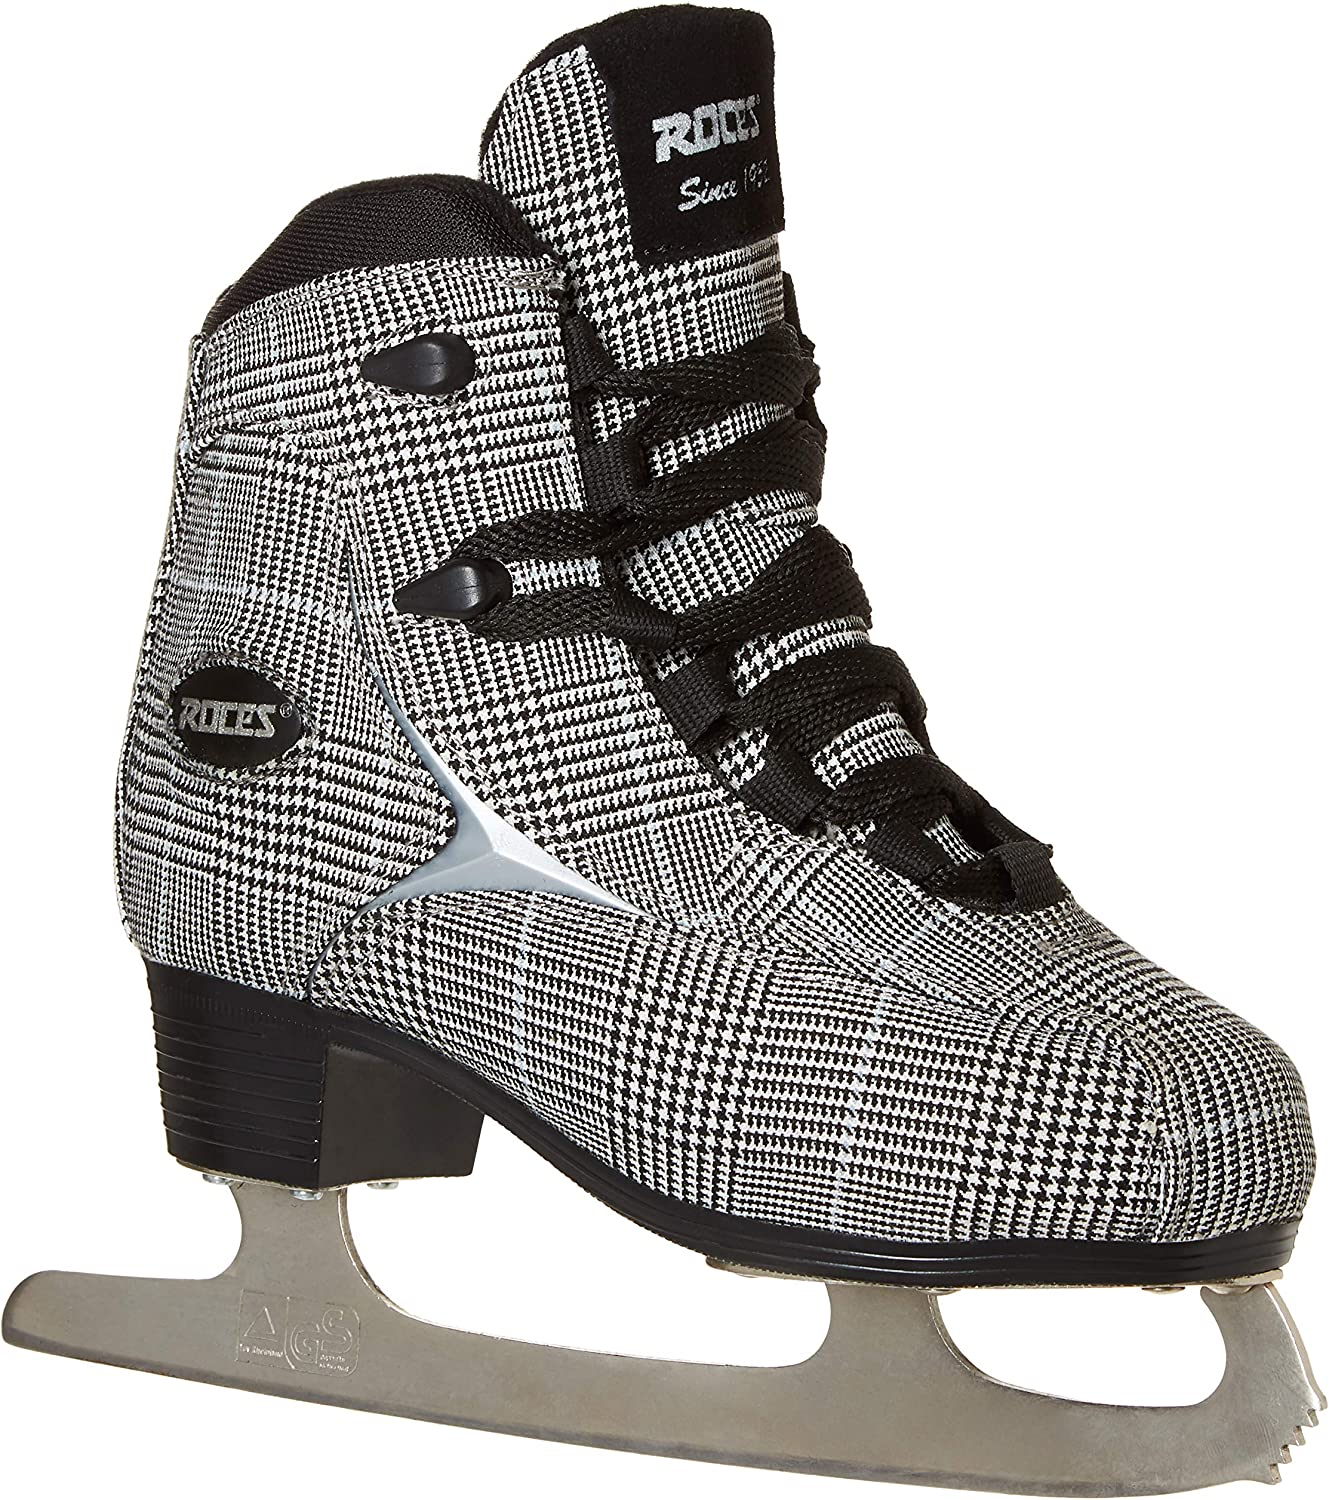 Roces Women's Italian Outlet ☆ Free Shipping Style Portland Mall Brits Superior Skate Ice